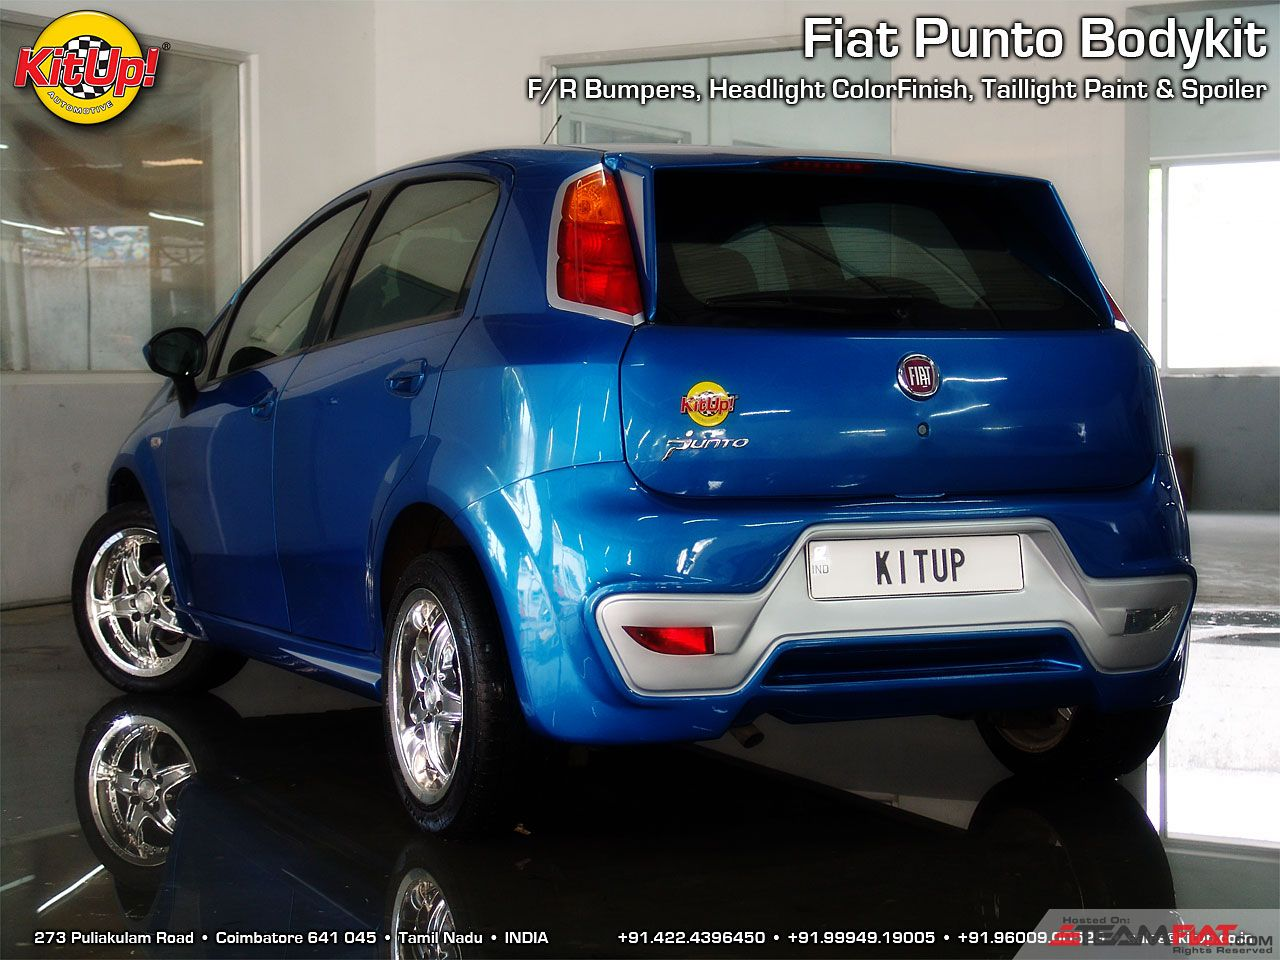 Punto-Bodykit1-7of8.jpg